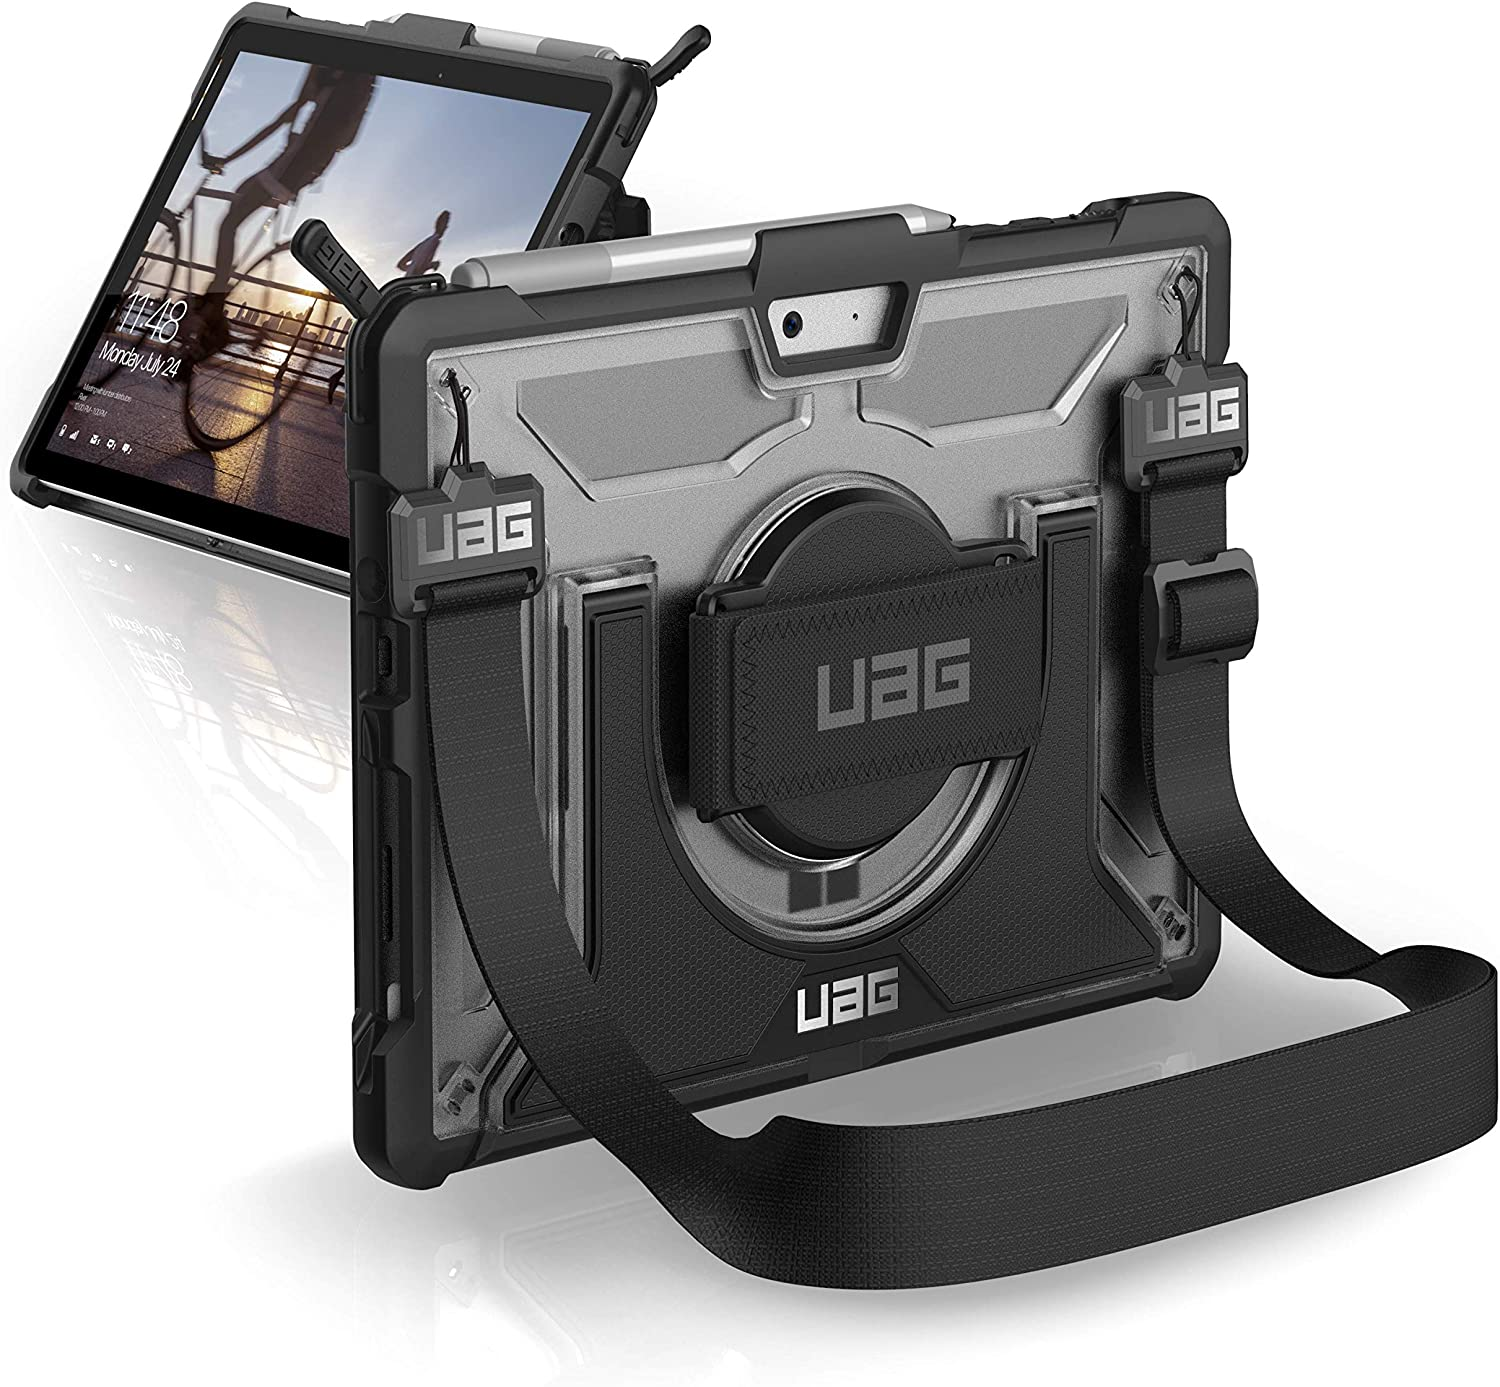 UAG Microsoft Surface Go 2 / Surface Go with Hand Strap & Shoulder Strap Plasma Feather-Light Rugged [Ice] Military Drop Tested Case